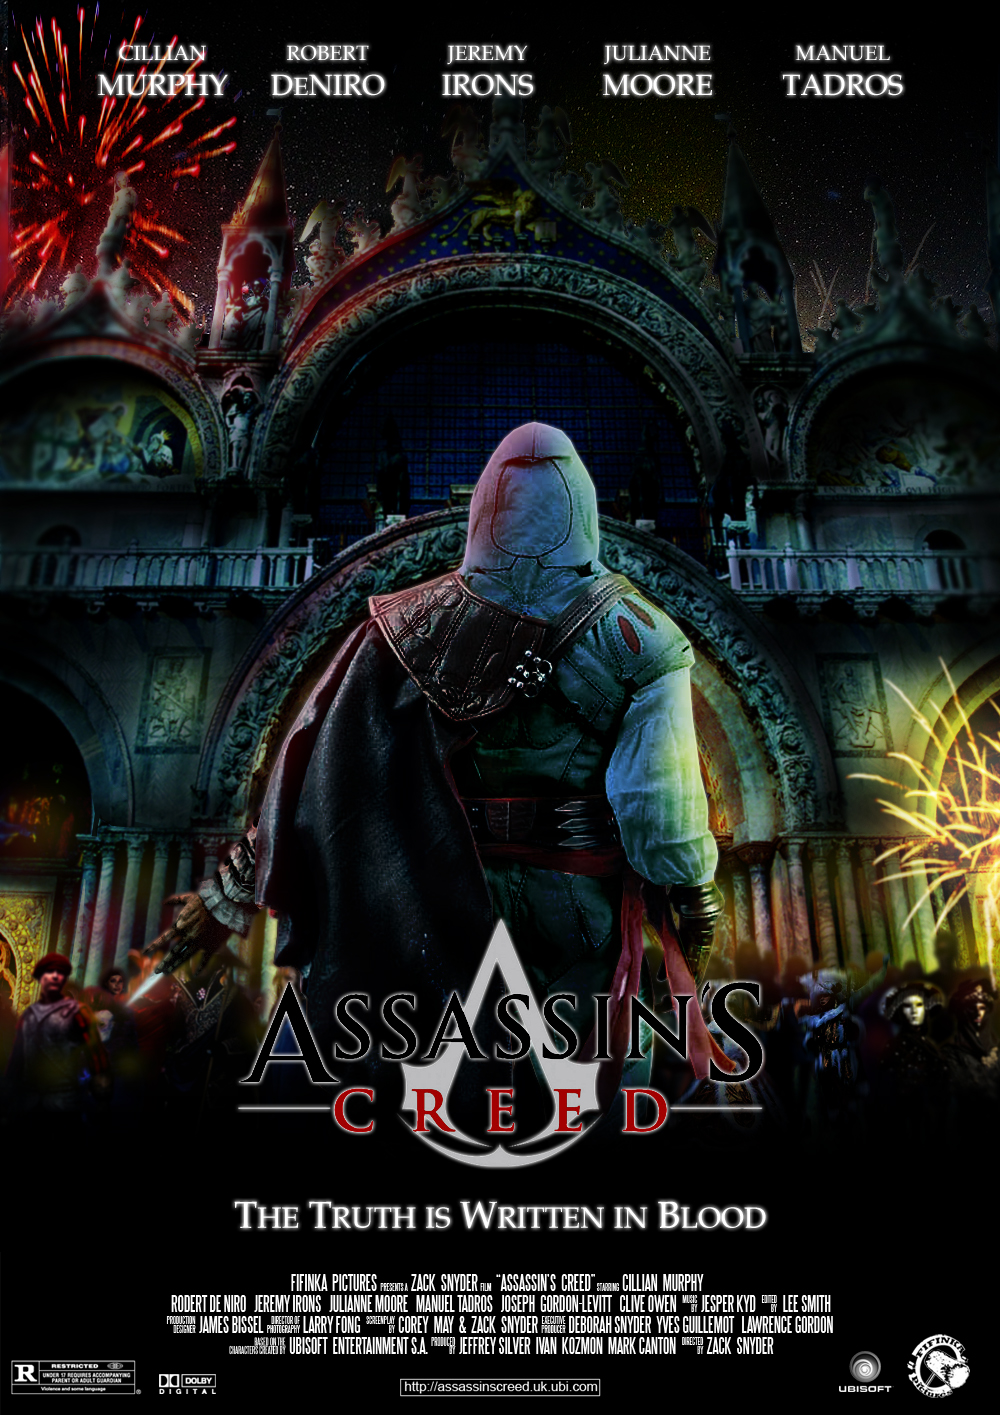 British Writer Confirmed For Assassinu2019s Creed Movie ...